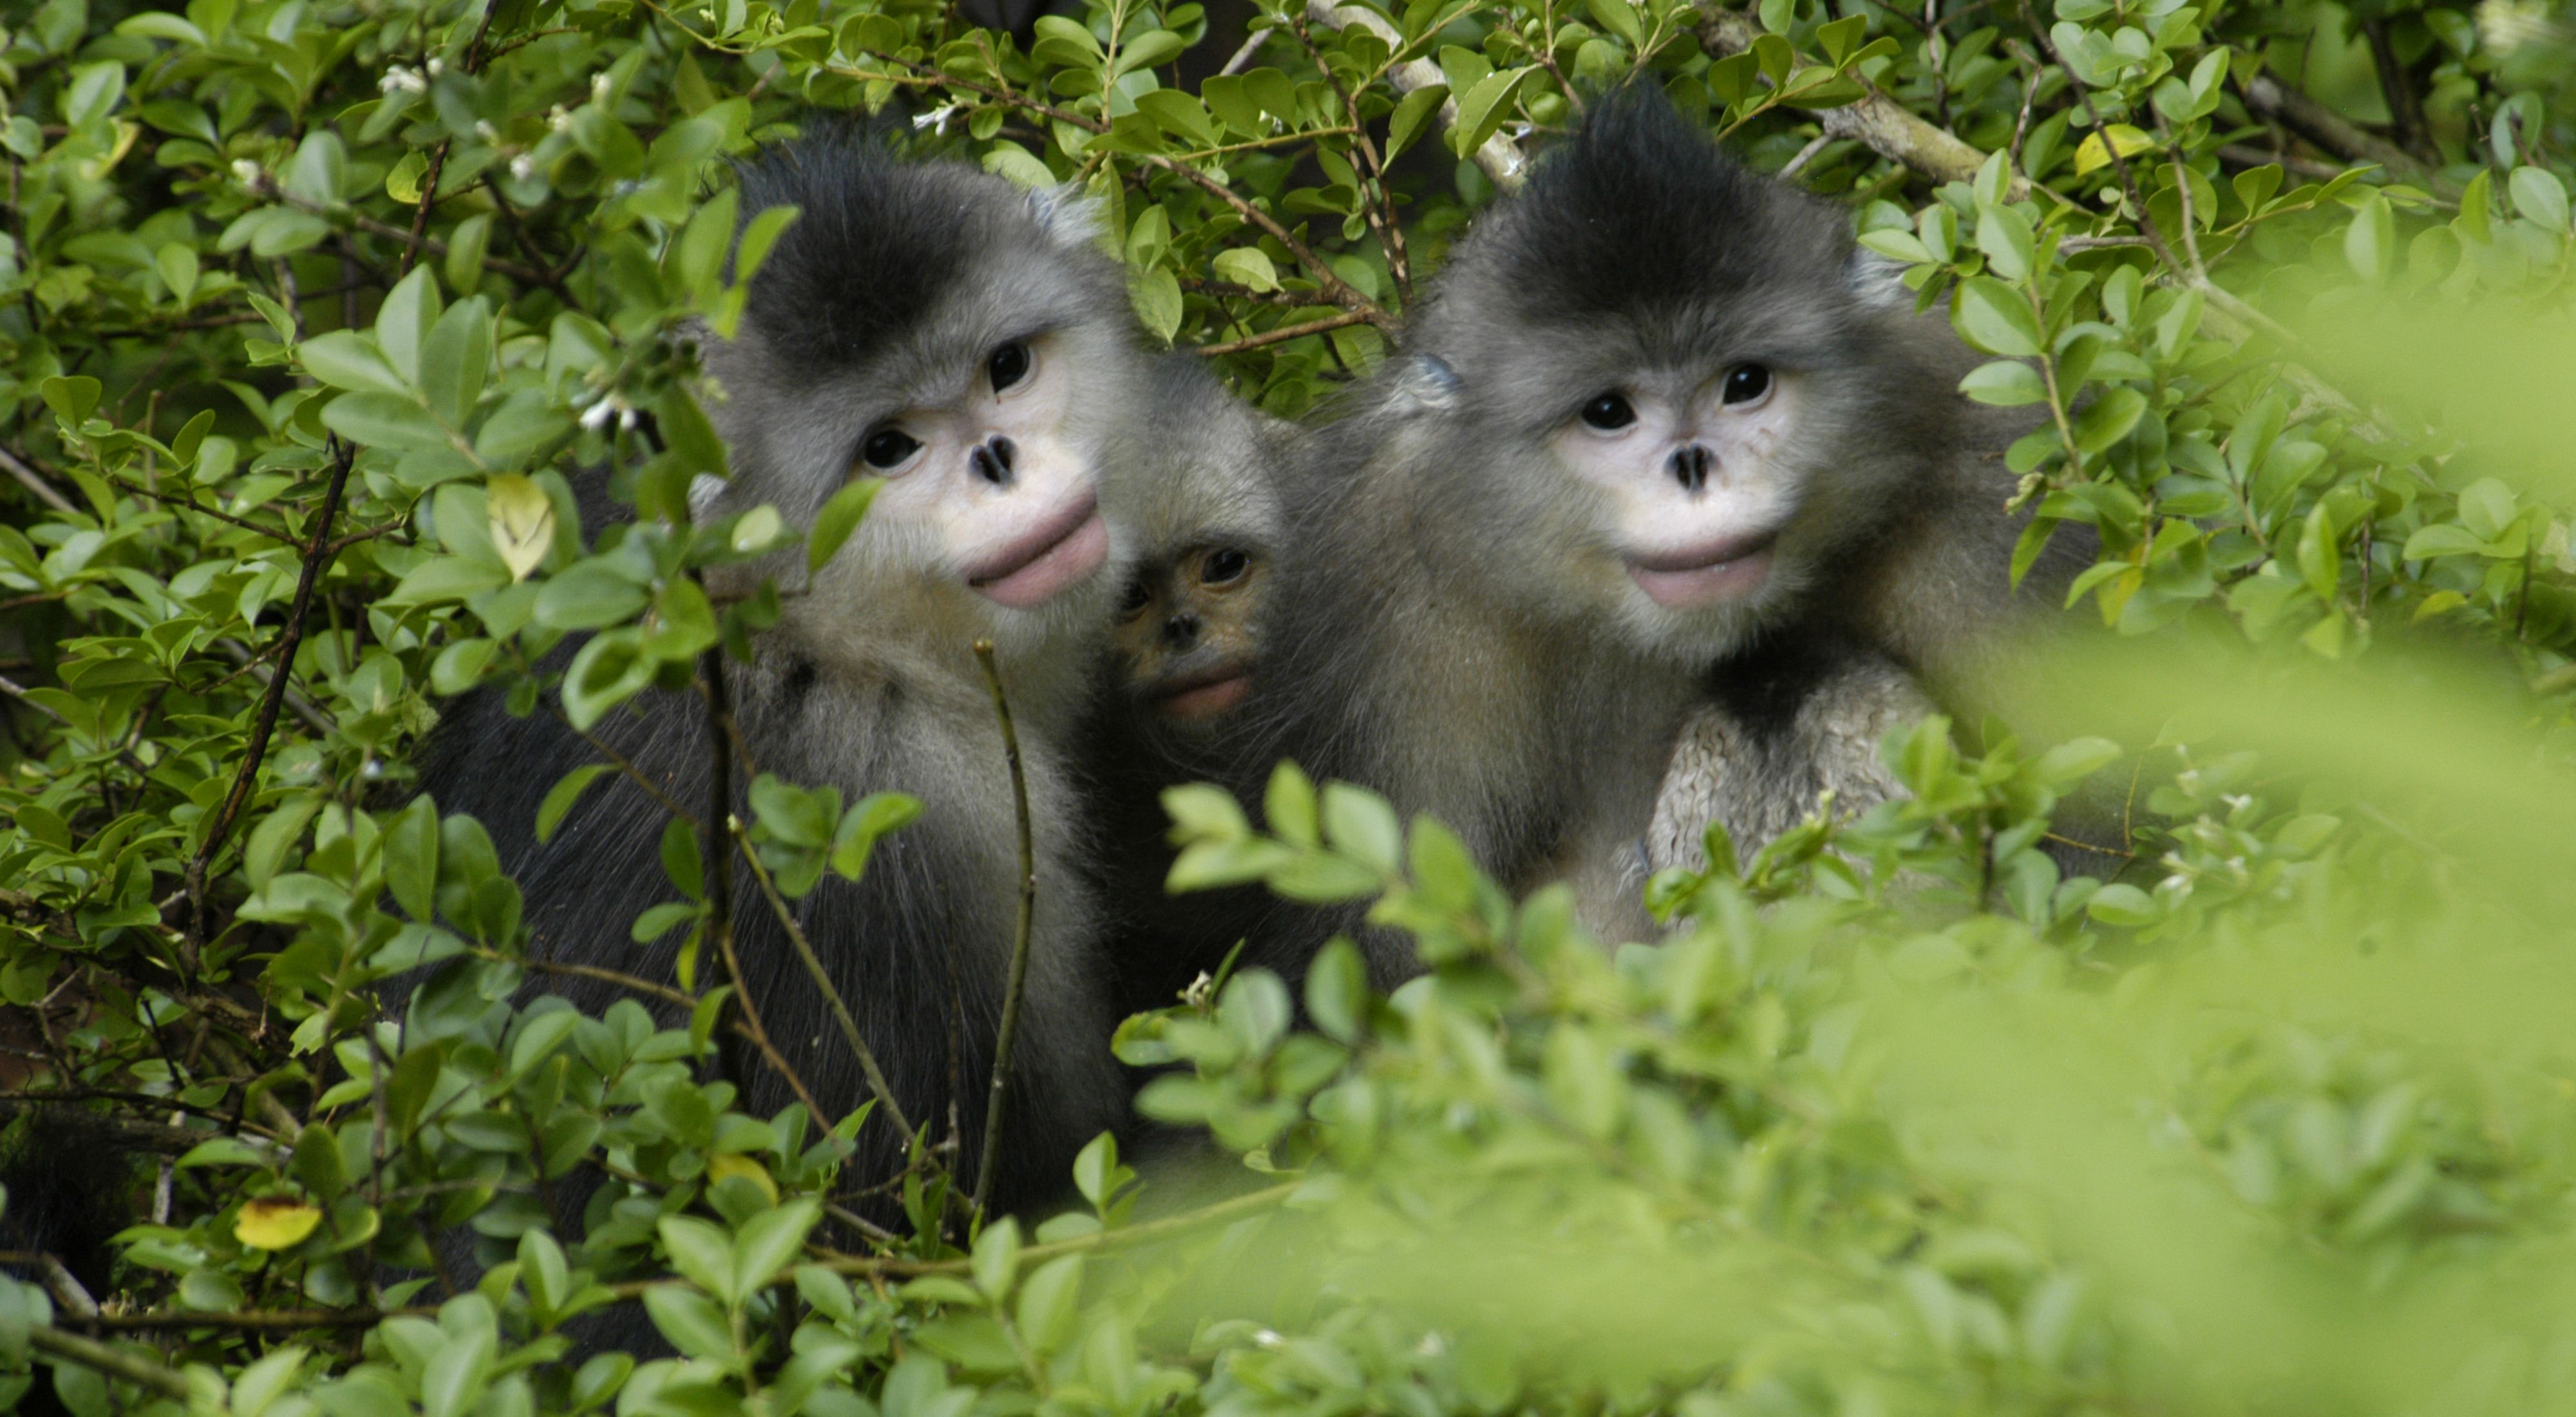 are considered one of the most endangered primates on Earth.